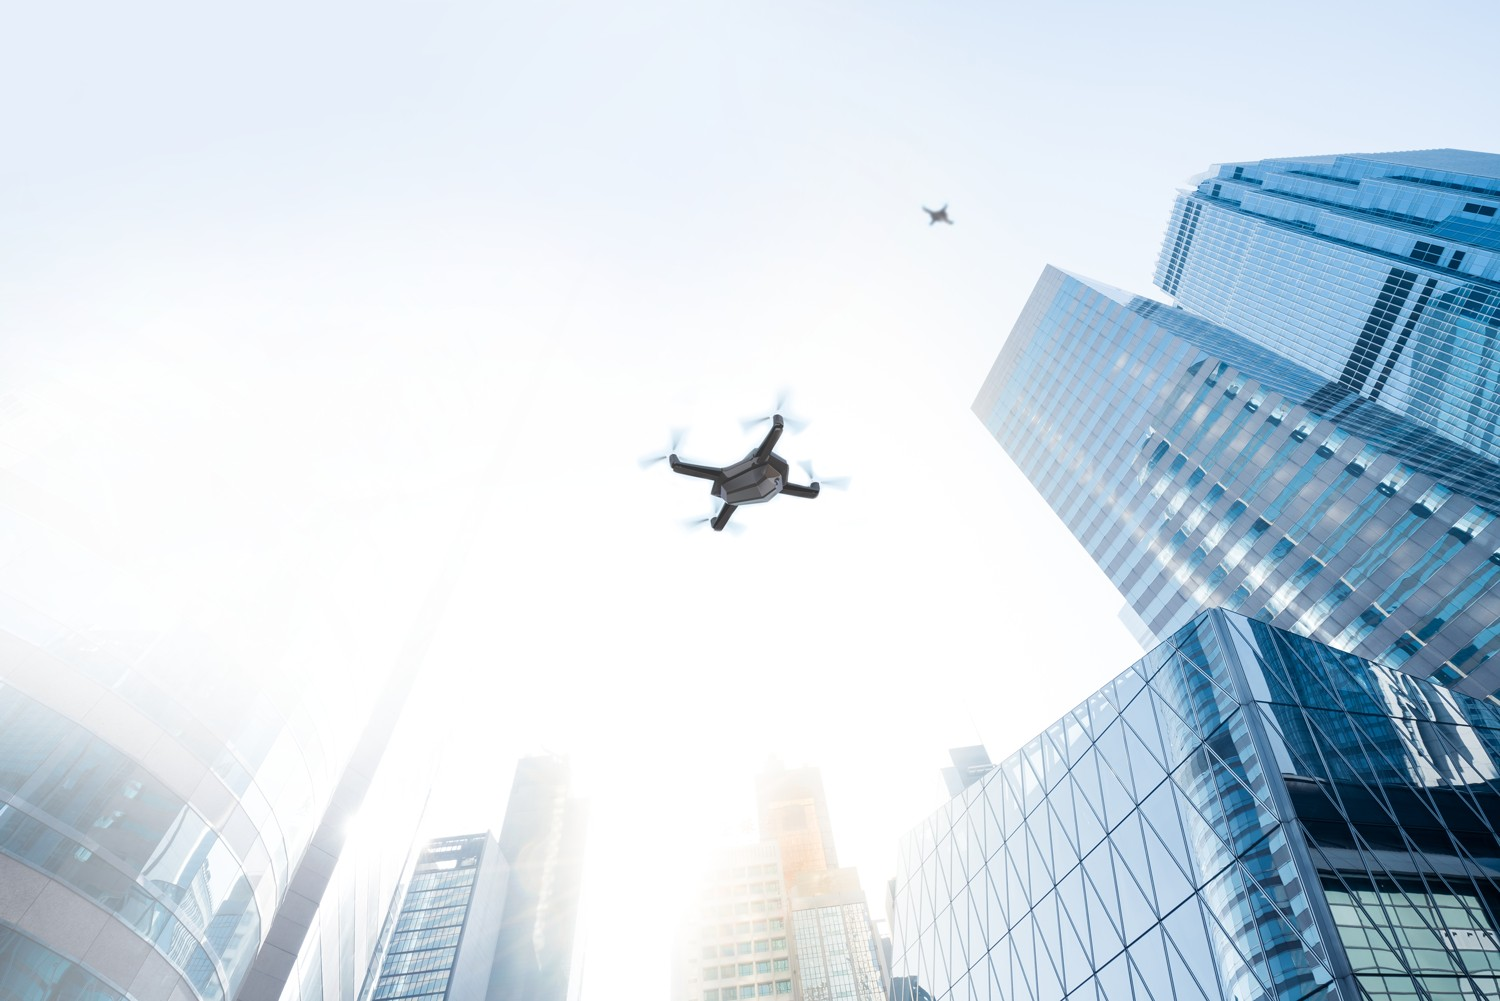 A drone flying next to skyscrapers